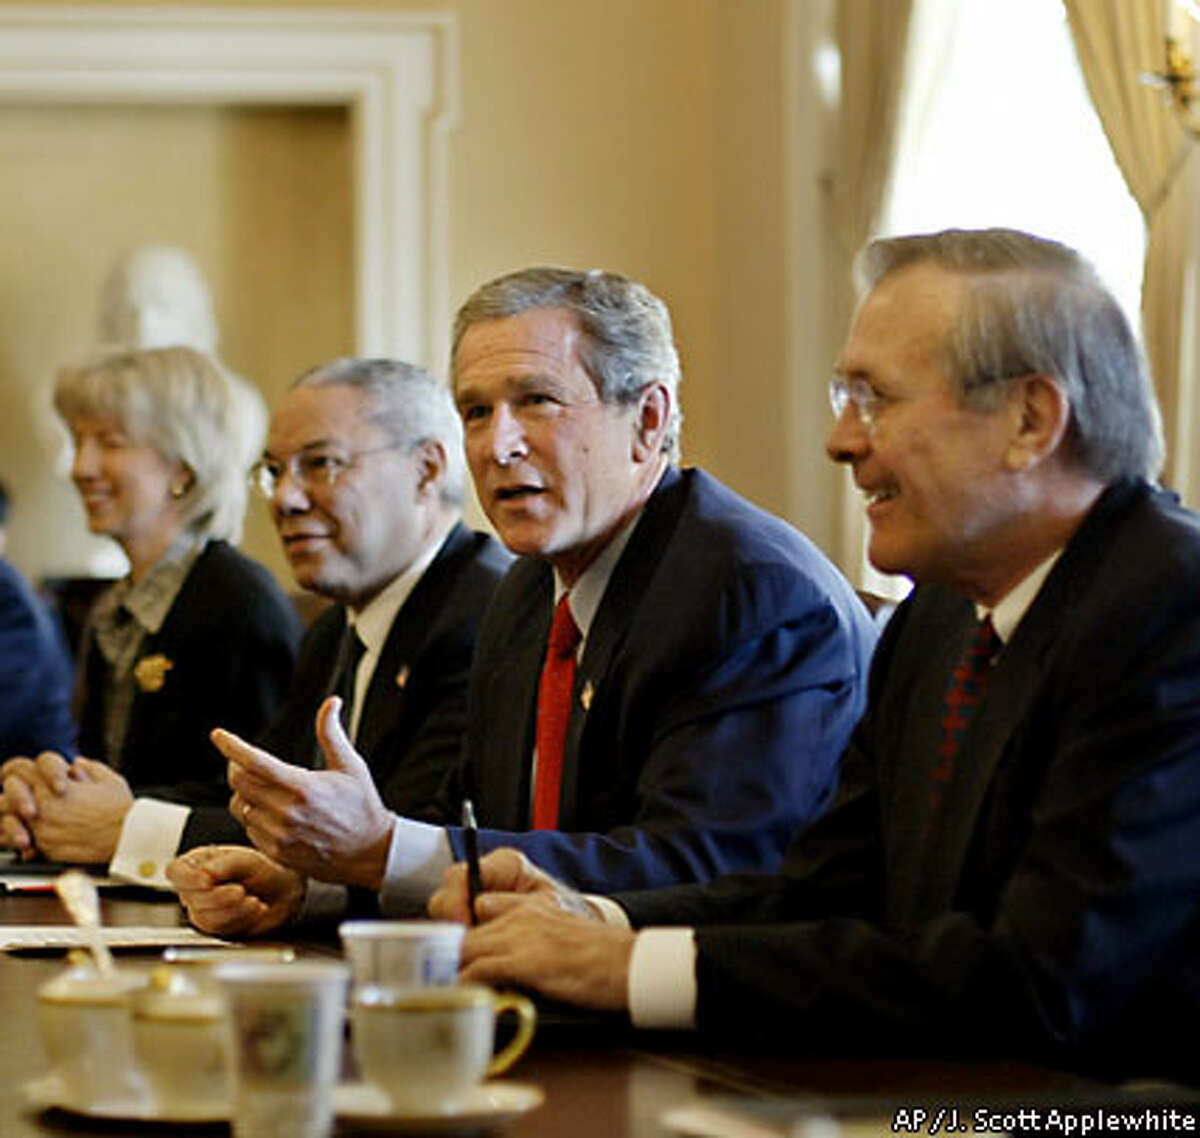 President Bush (second from right) and his Cabinet have set the United States on a course that is not supportive of disarmament agreements. Associated Press photo by J. Scott Applewhite